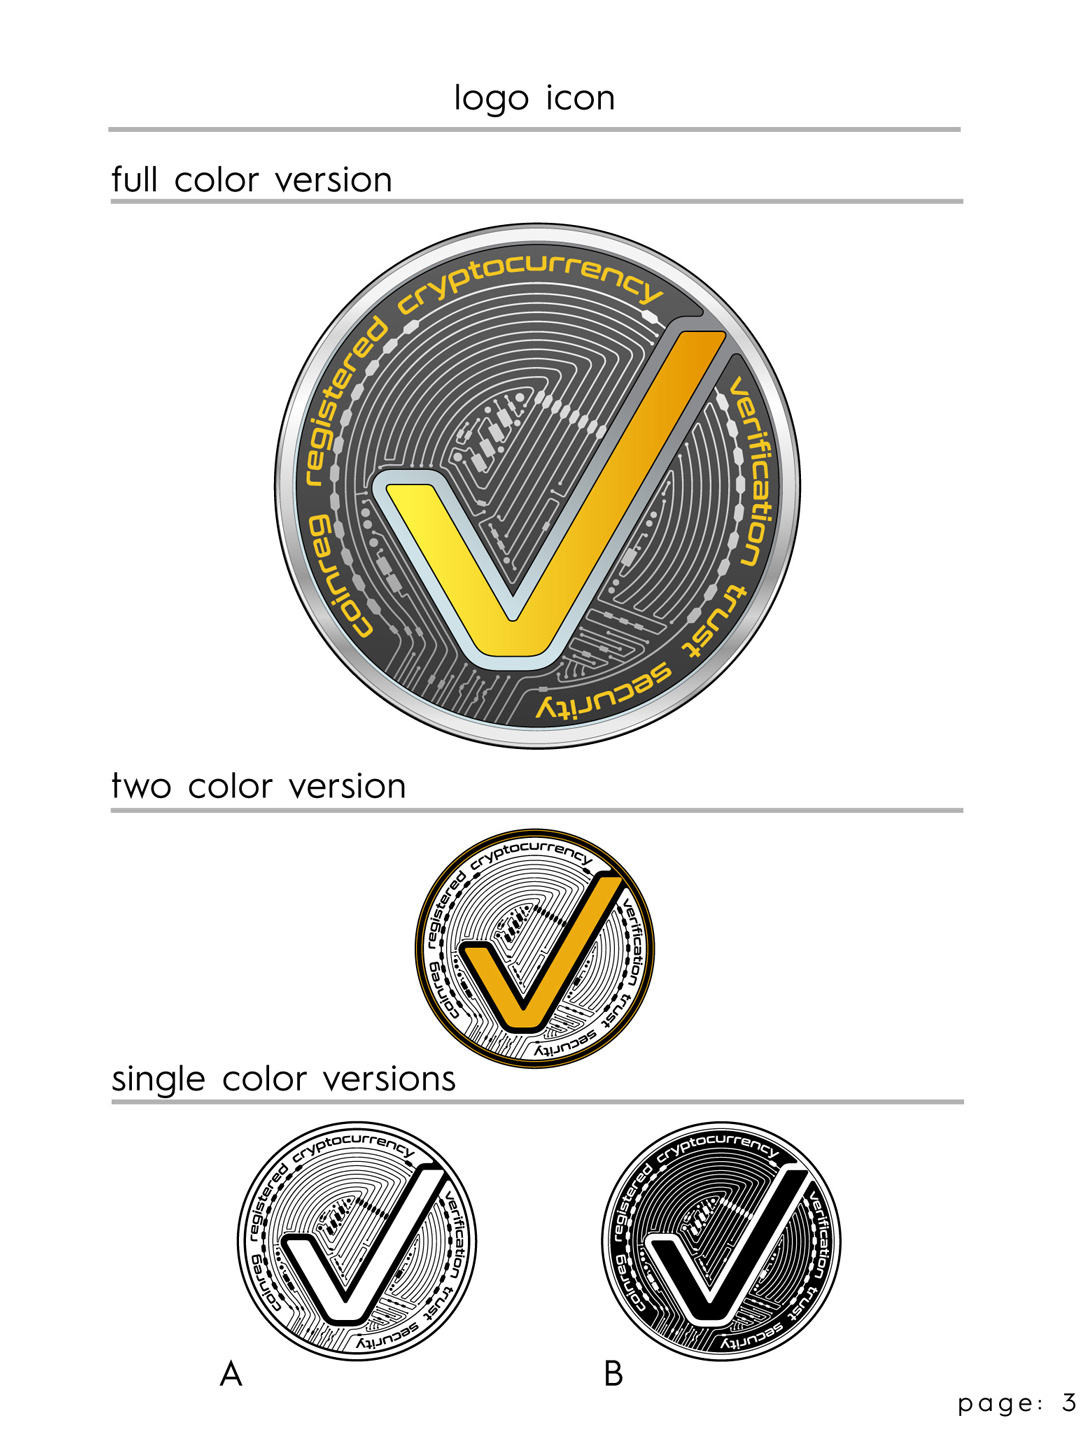 BMS CoinReg LOGO Style Sheet Page 3